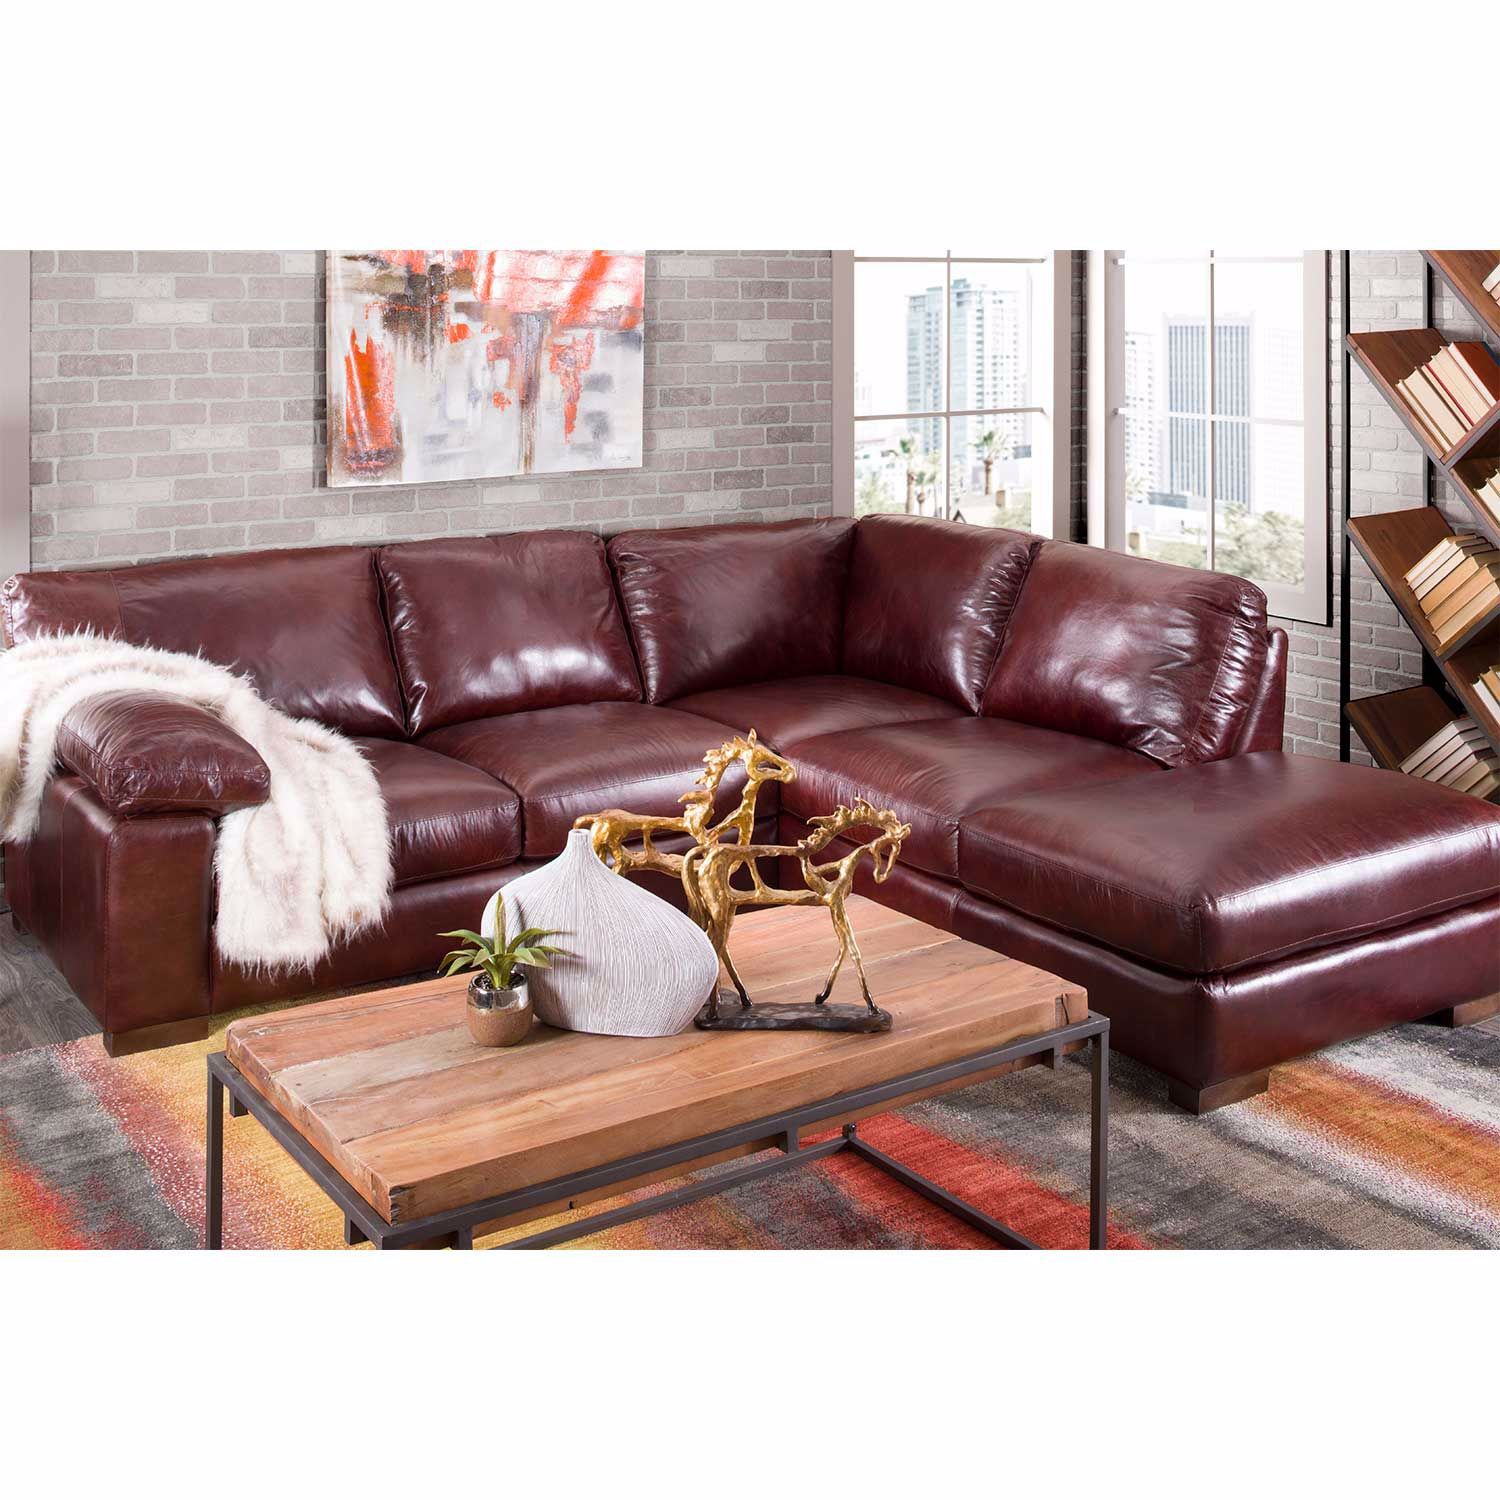 Picture of Barcelona All Leather 2 Piece Sectional with LAF Chaise